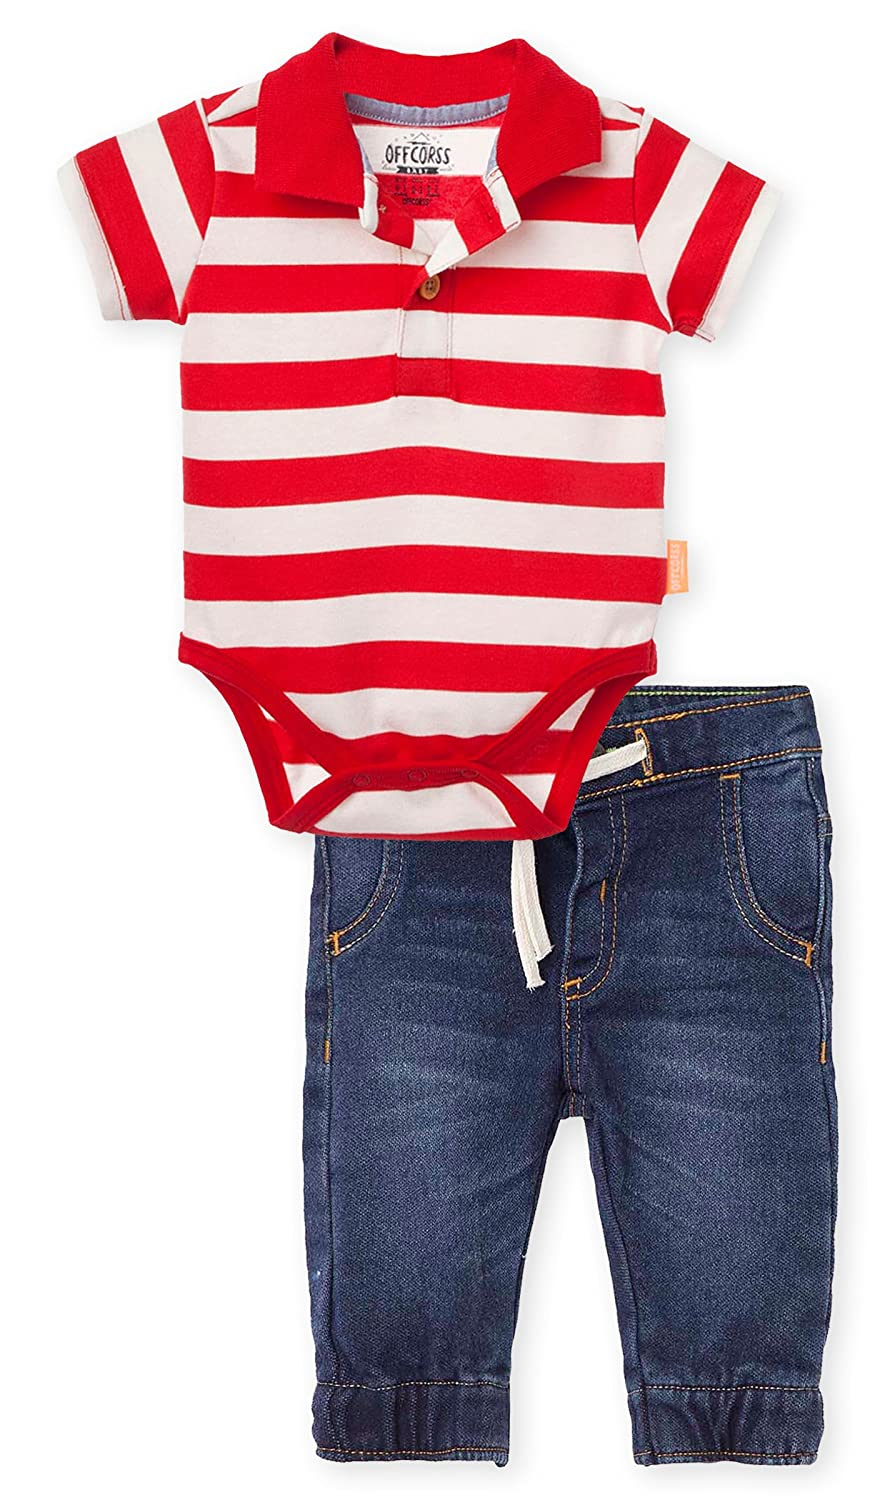 Amazon.com: OFFCORSS Baby Boy Polo Shirt Bodysuite + Jeans Casual Outfit Conjunto de Bebe: Clothing